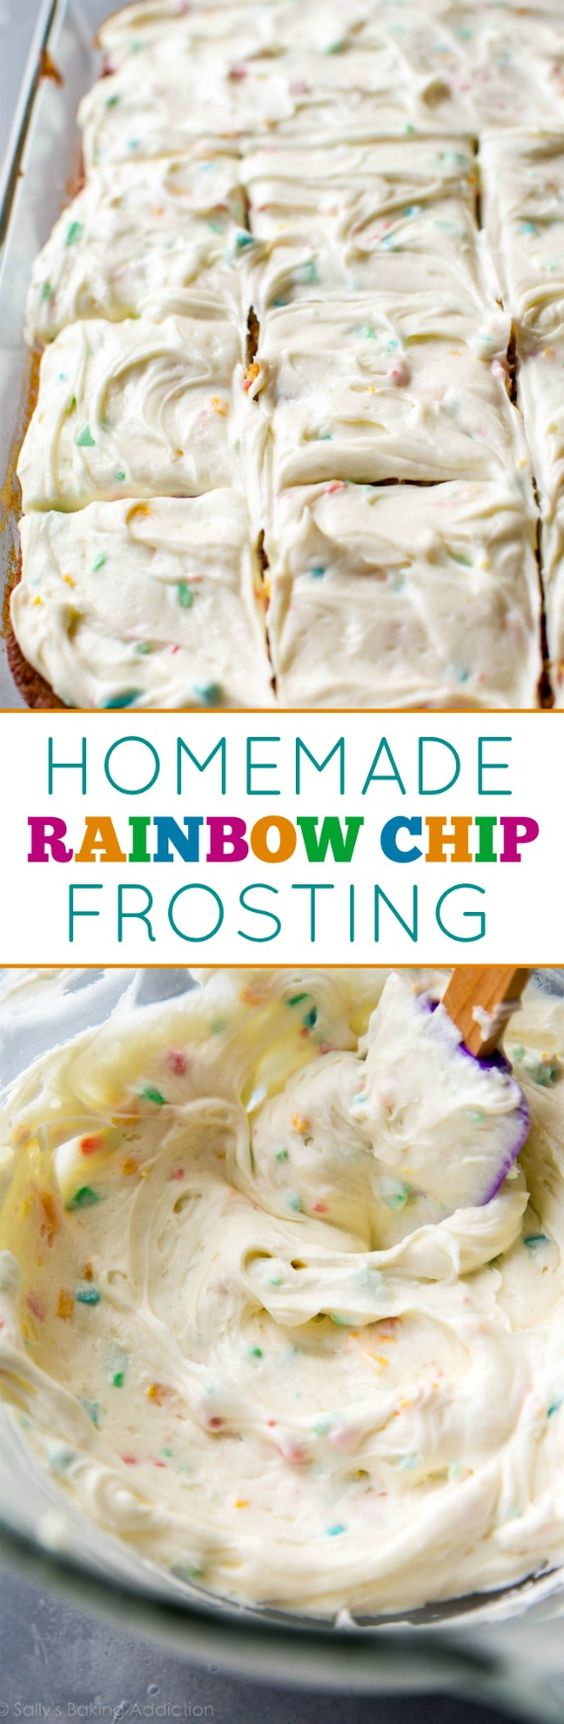 chip frosting how to make chips frostings rainbows recipe for frosting ...